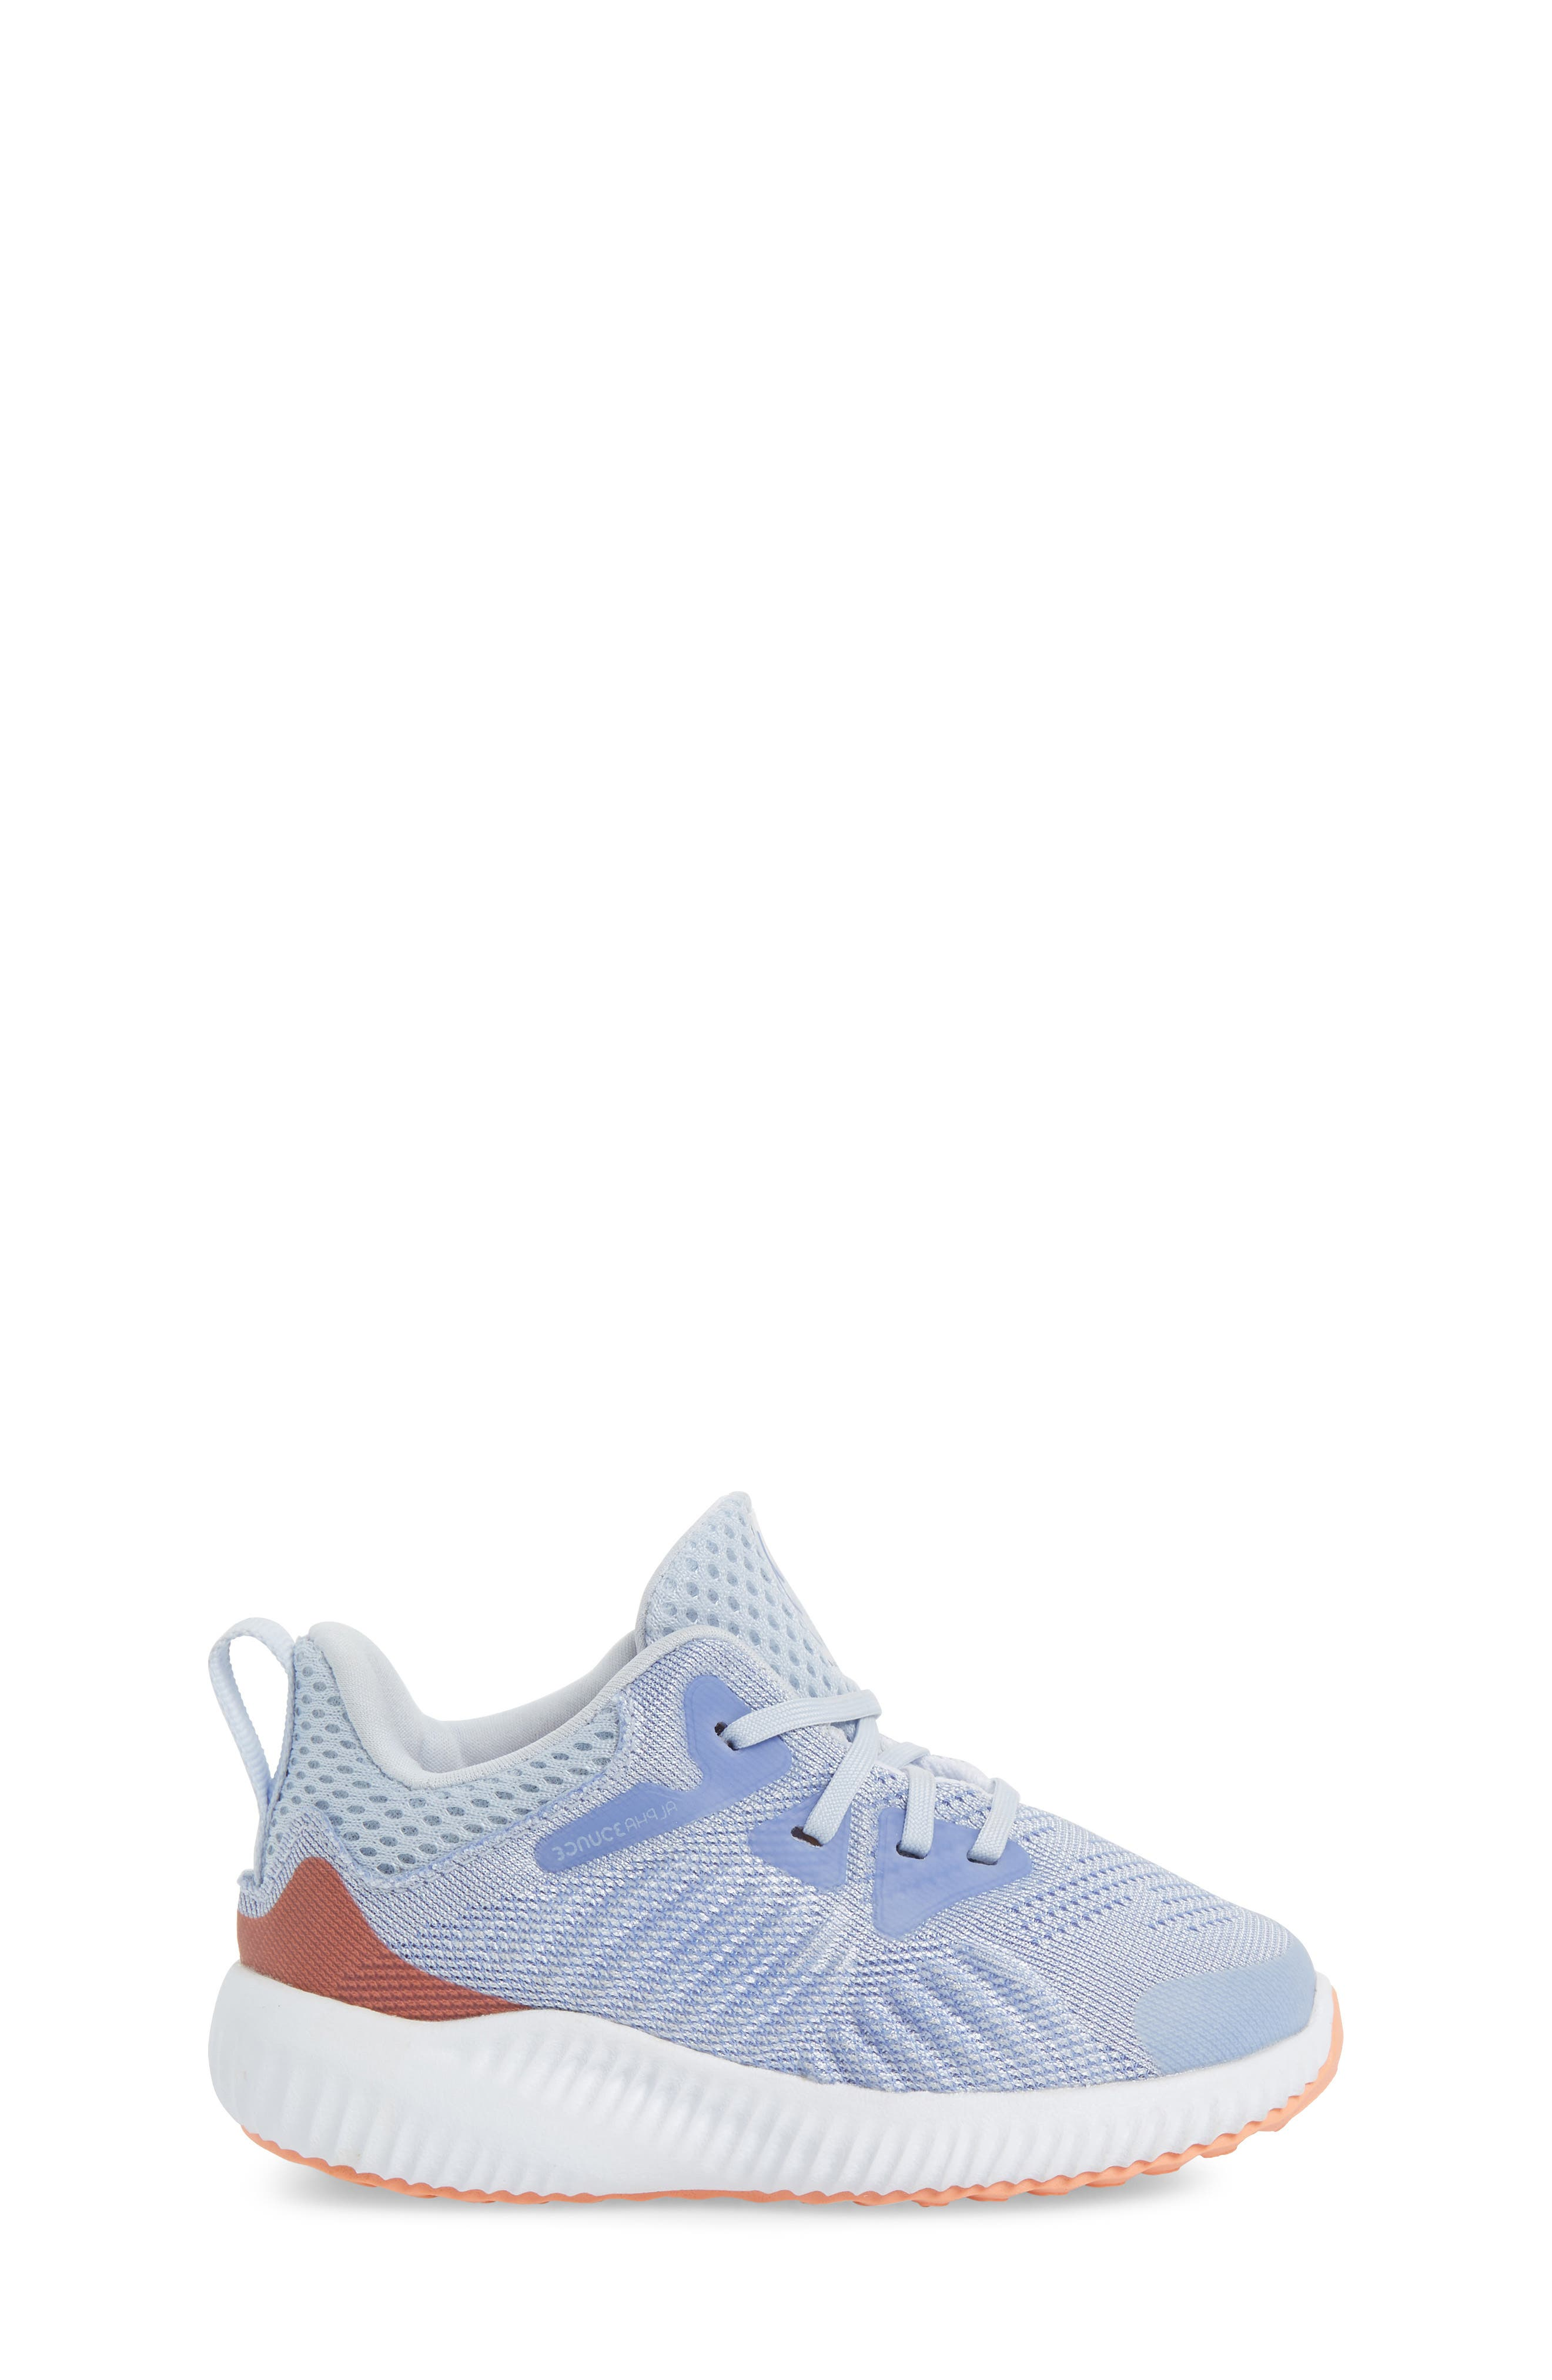 AlphaBounce Beyond Running Shoe,                             Alternate thumbnail 4, color,                             Blue/ Chalk Purple/ White